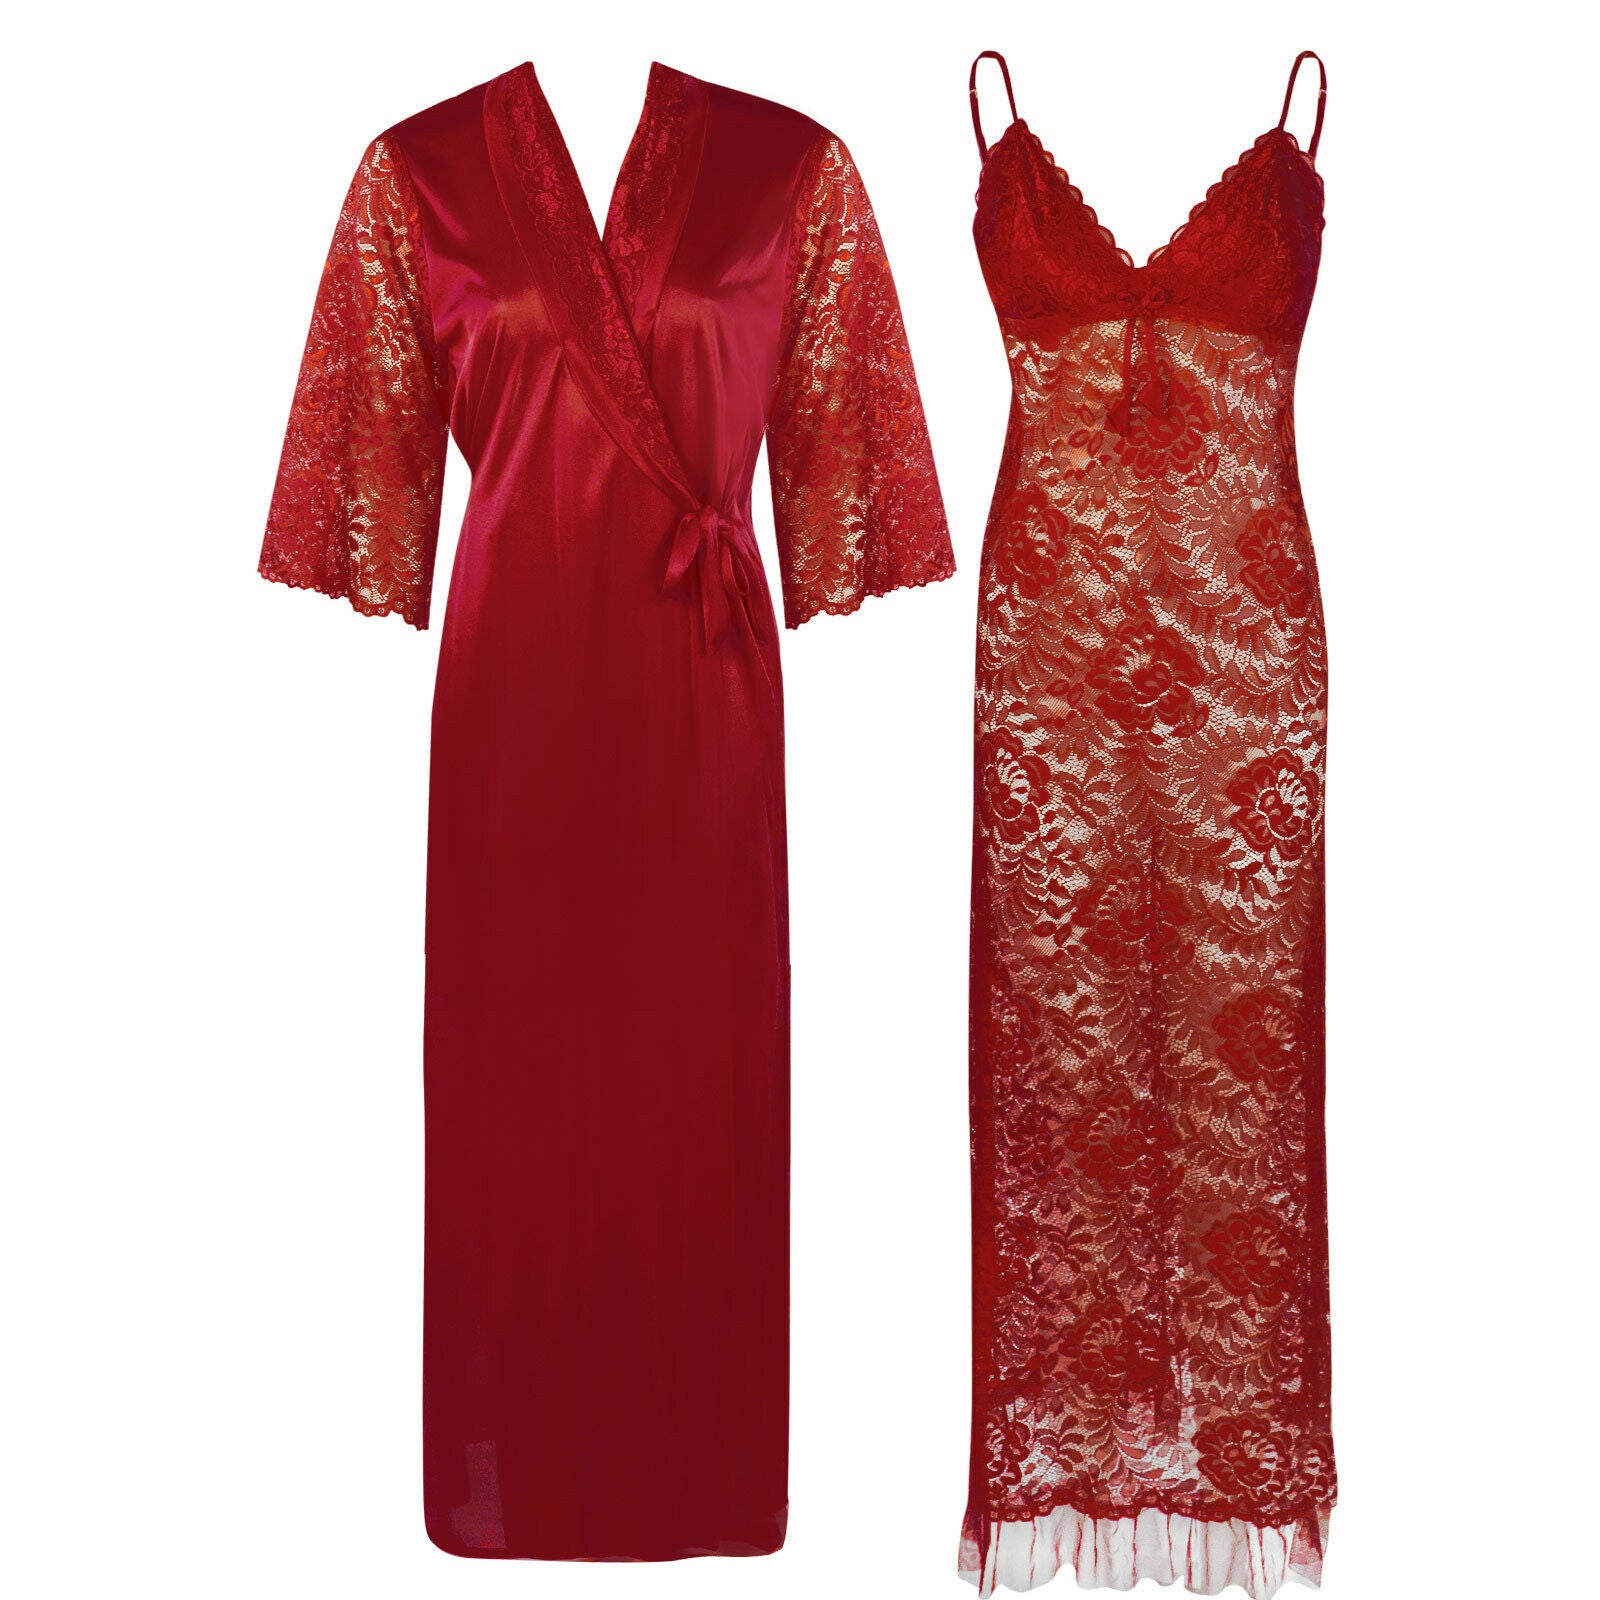 Full Lace Nighty with Satin Robe [colour]- Hautie UK, #Nightfashion | #Underfashion ONE, FREE SIZE S M L XL  DEEP RED